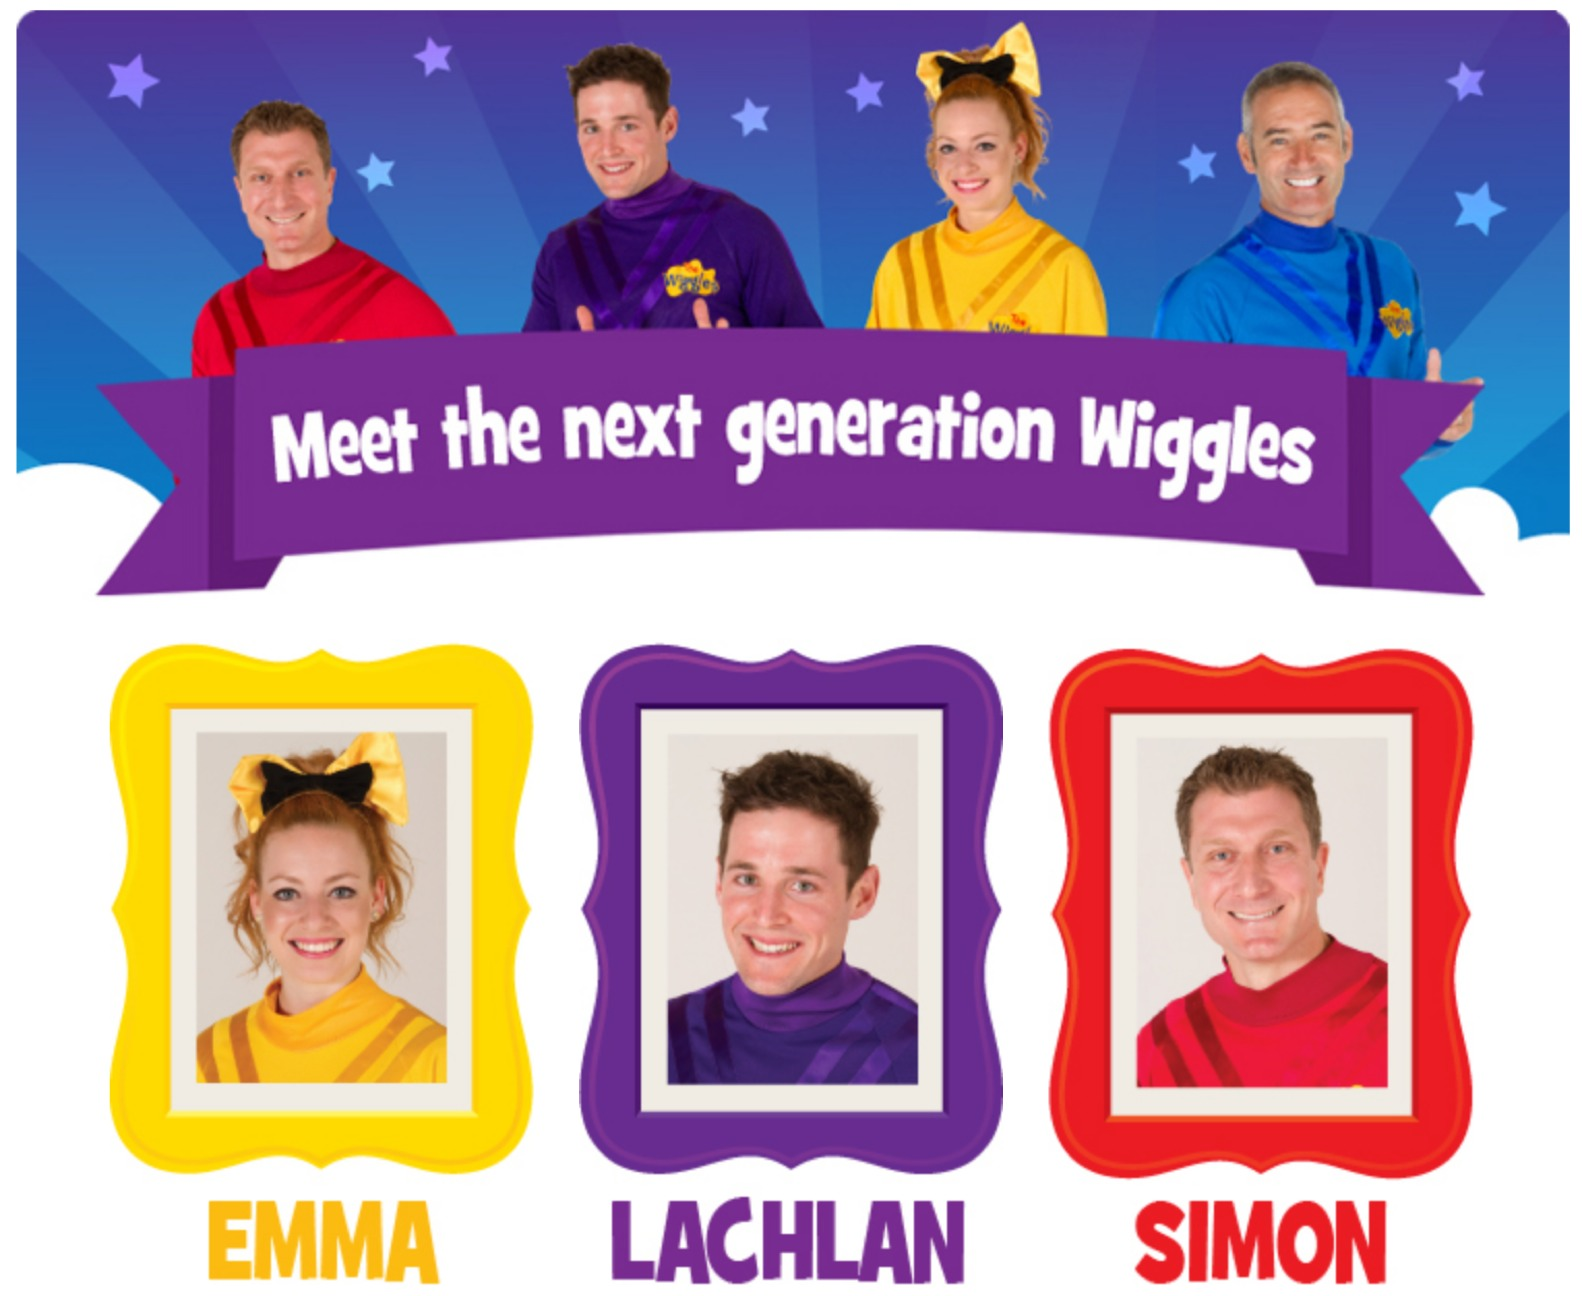 New Wiggles 2013